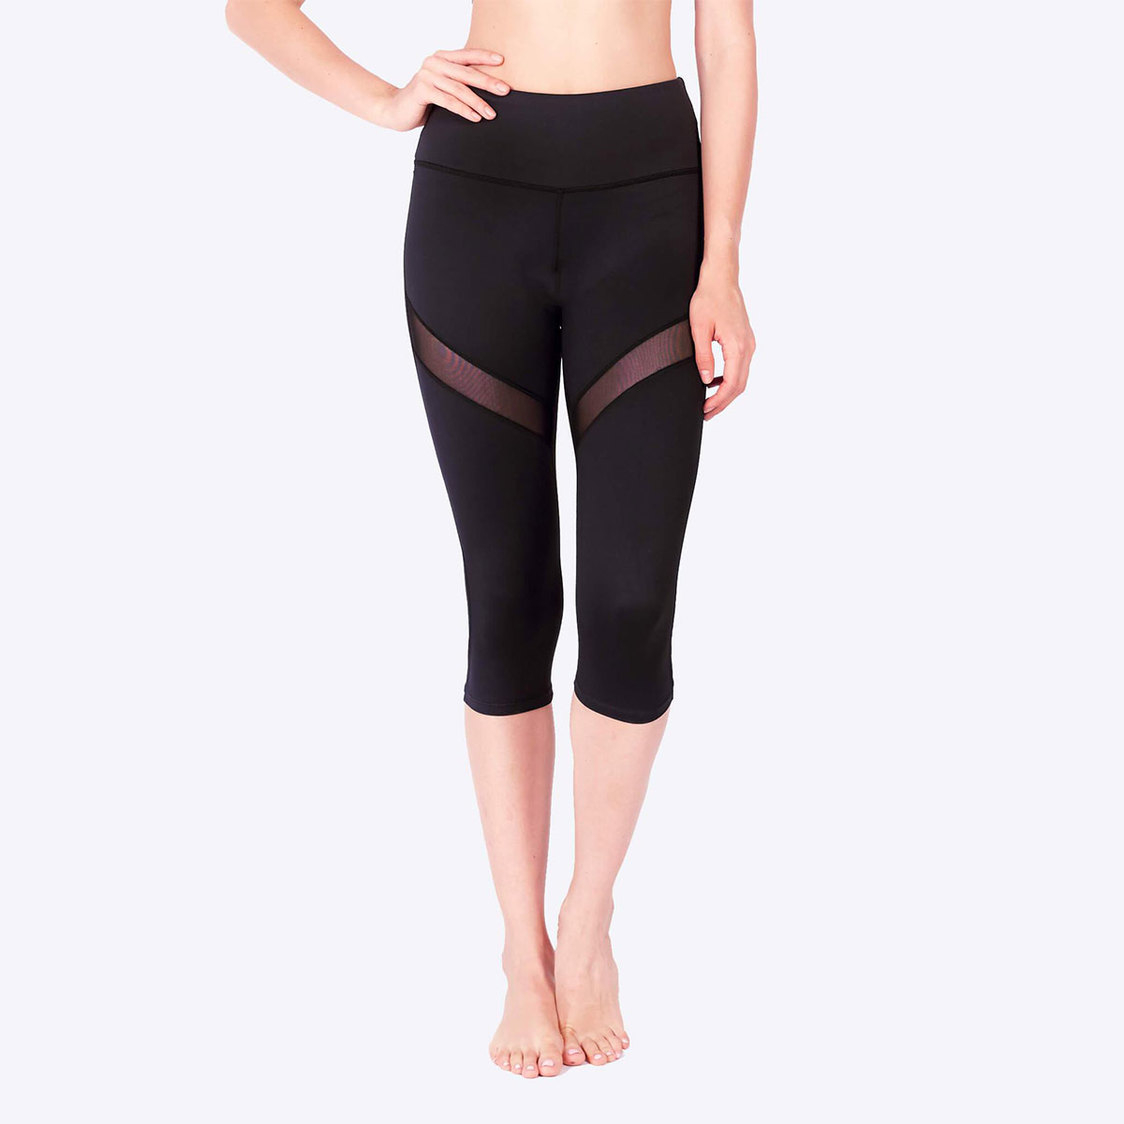 LIMITLESS Striped Mesh 34 Capris with Keeperband in Black